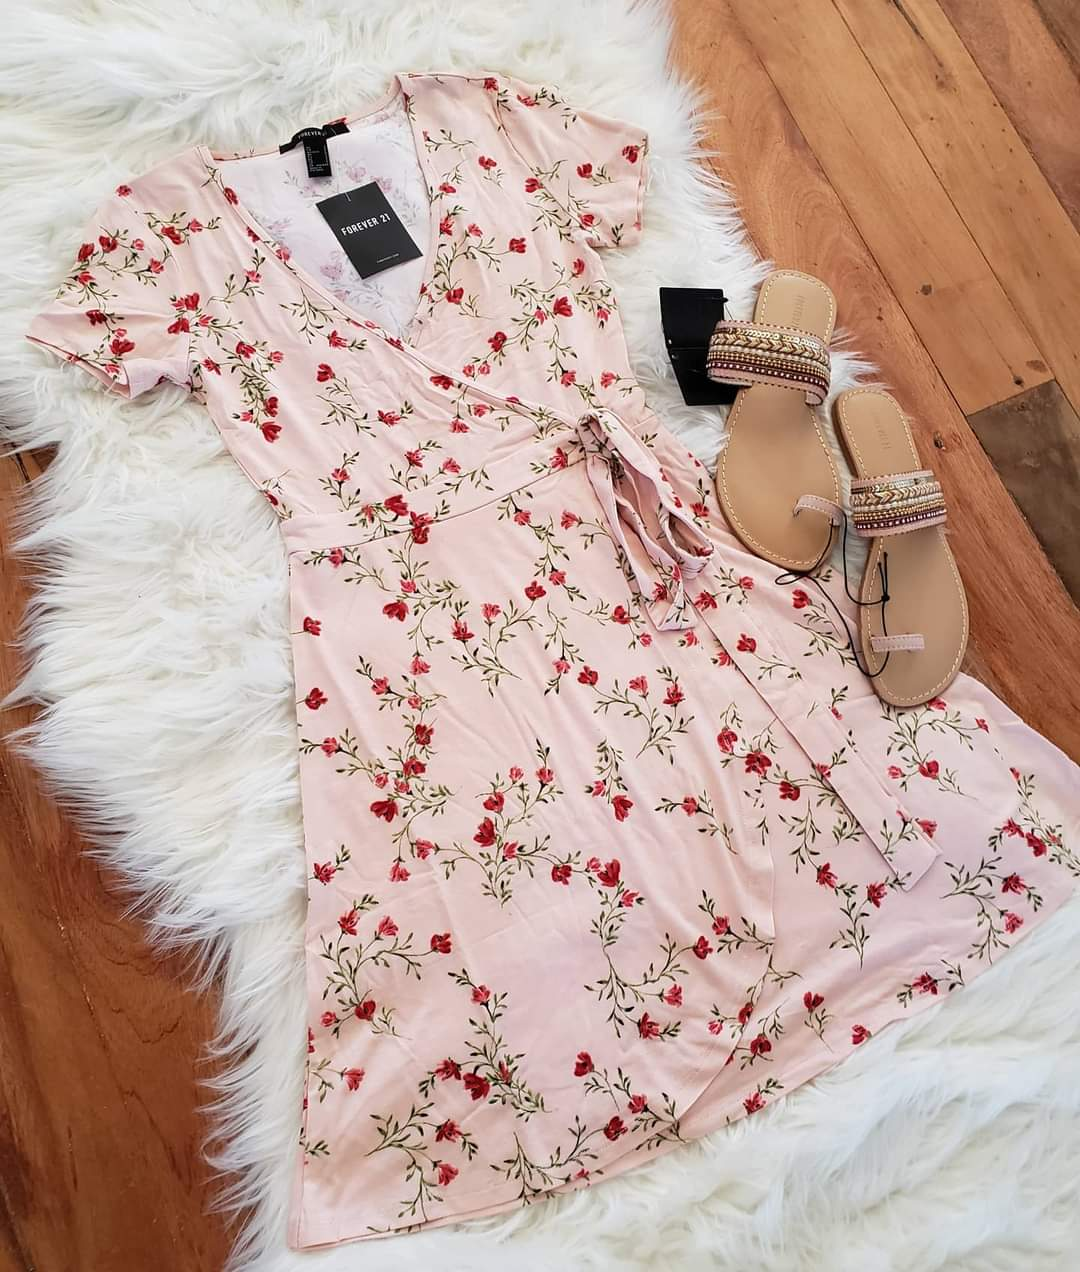 Forever 21 wrap dress and Boho sandals